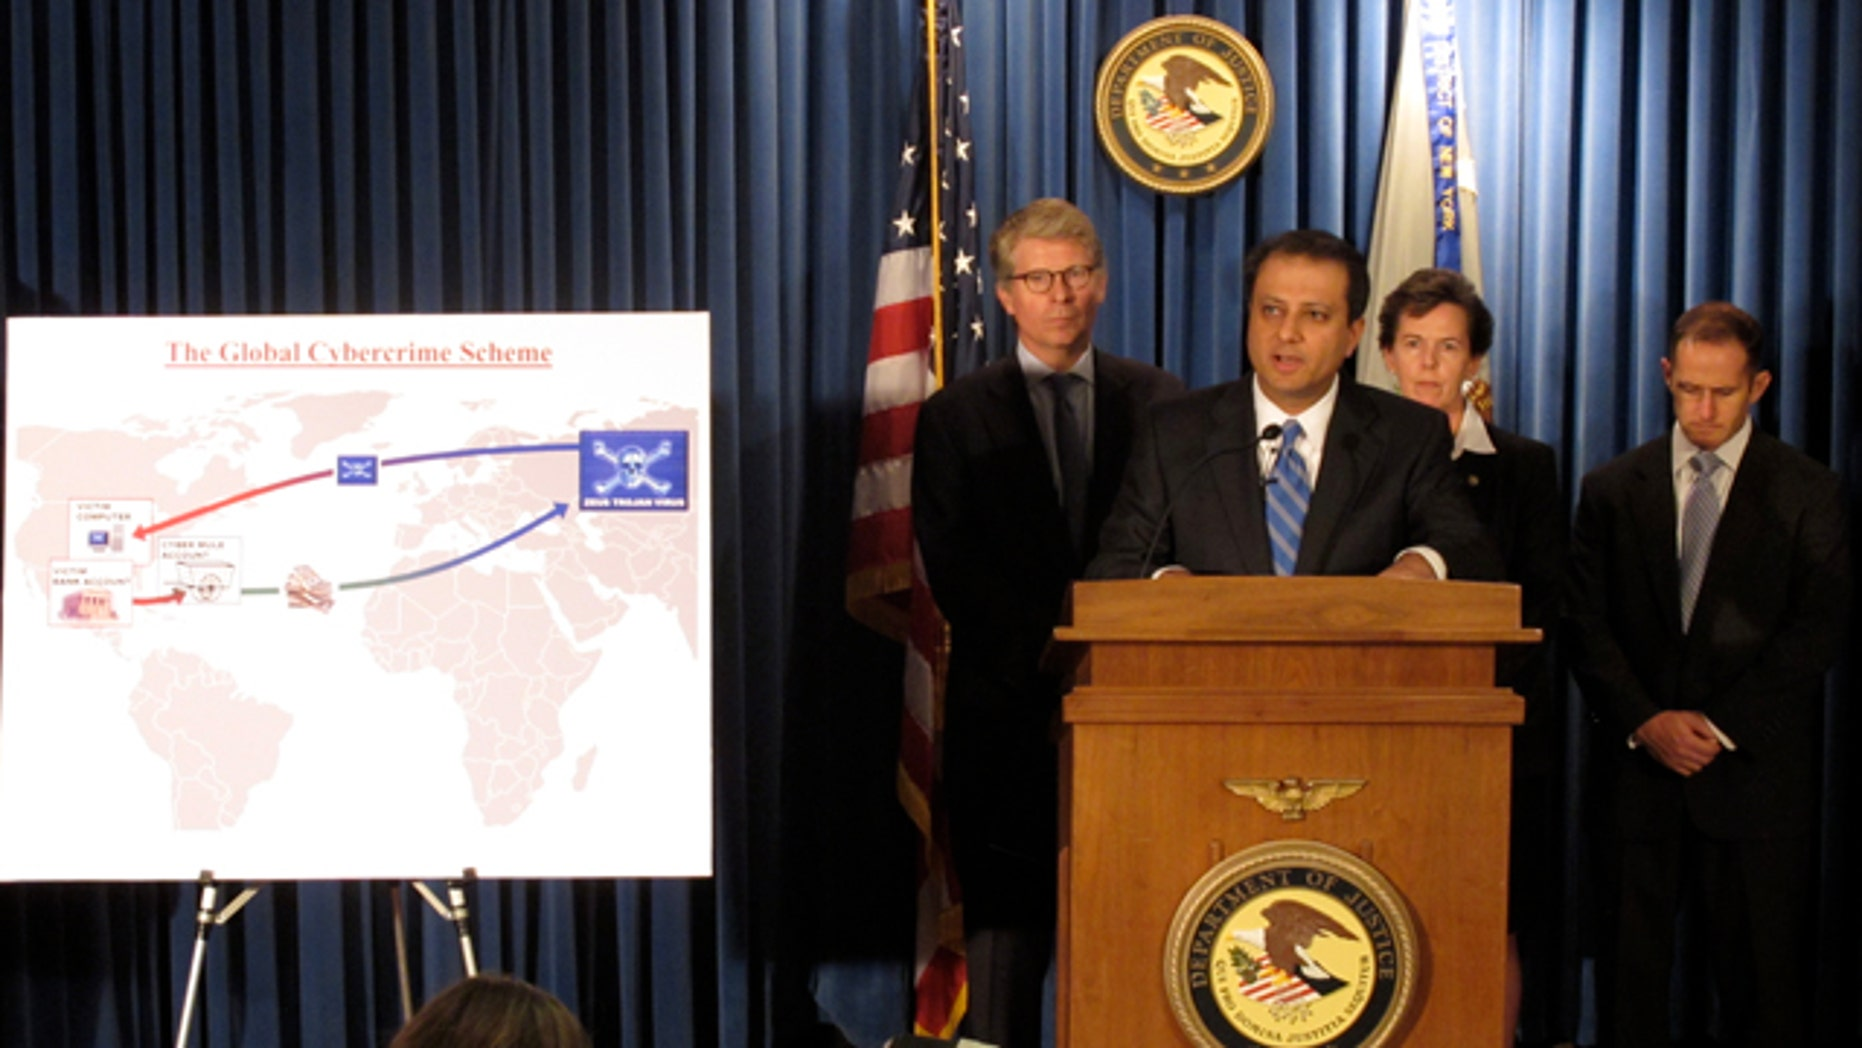 Preet Bharara, U.S. attorney for the Southern District of New York, at a press conference announcing charges against 60 members of an international cybercrime ring.